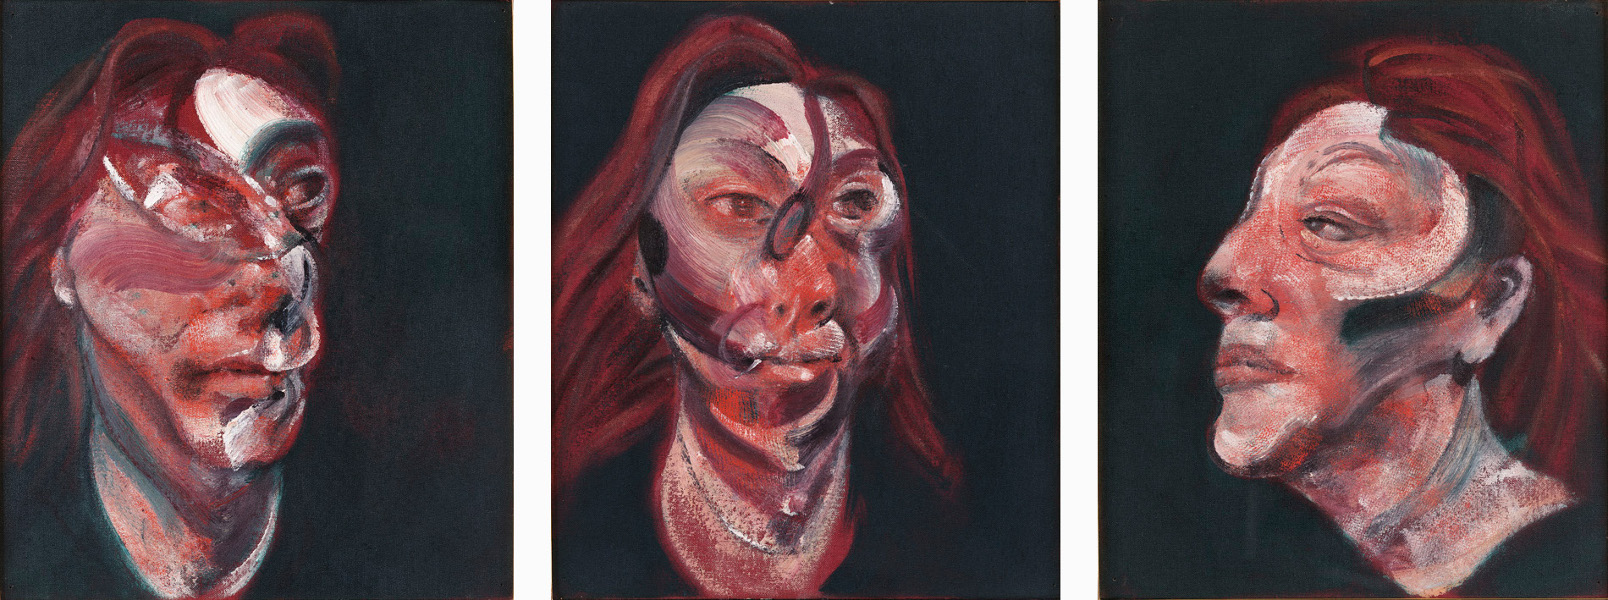 Image: Francis Bacon, 'Three Studies for a Portrait of Isabel Rawsthorne', 1965, oil on canvas, © The Estate of Francis Bacon / DACS London 2014. All rights reserved.